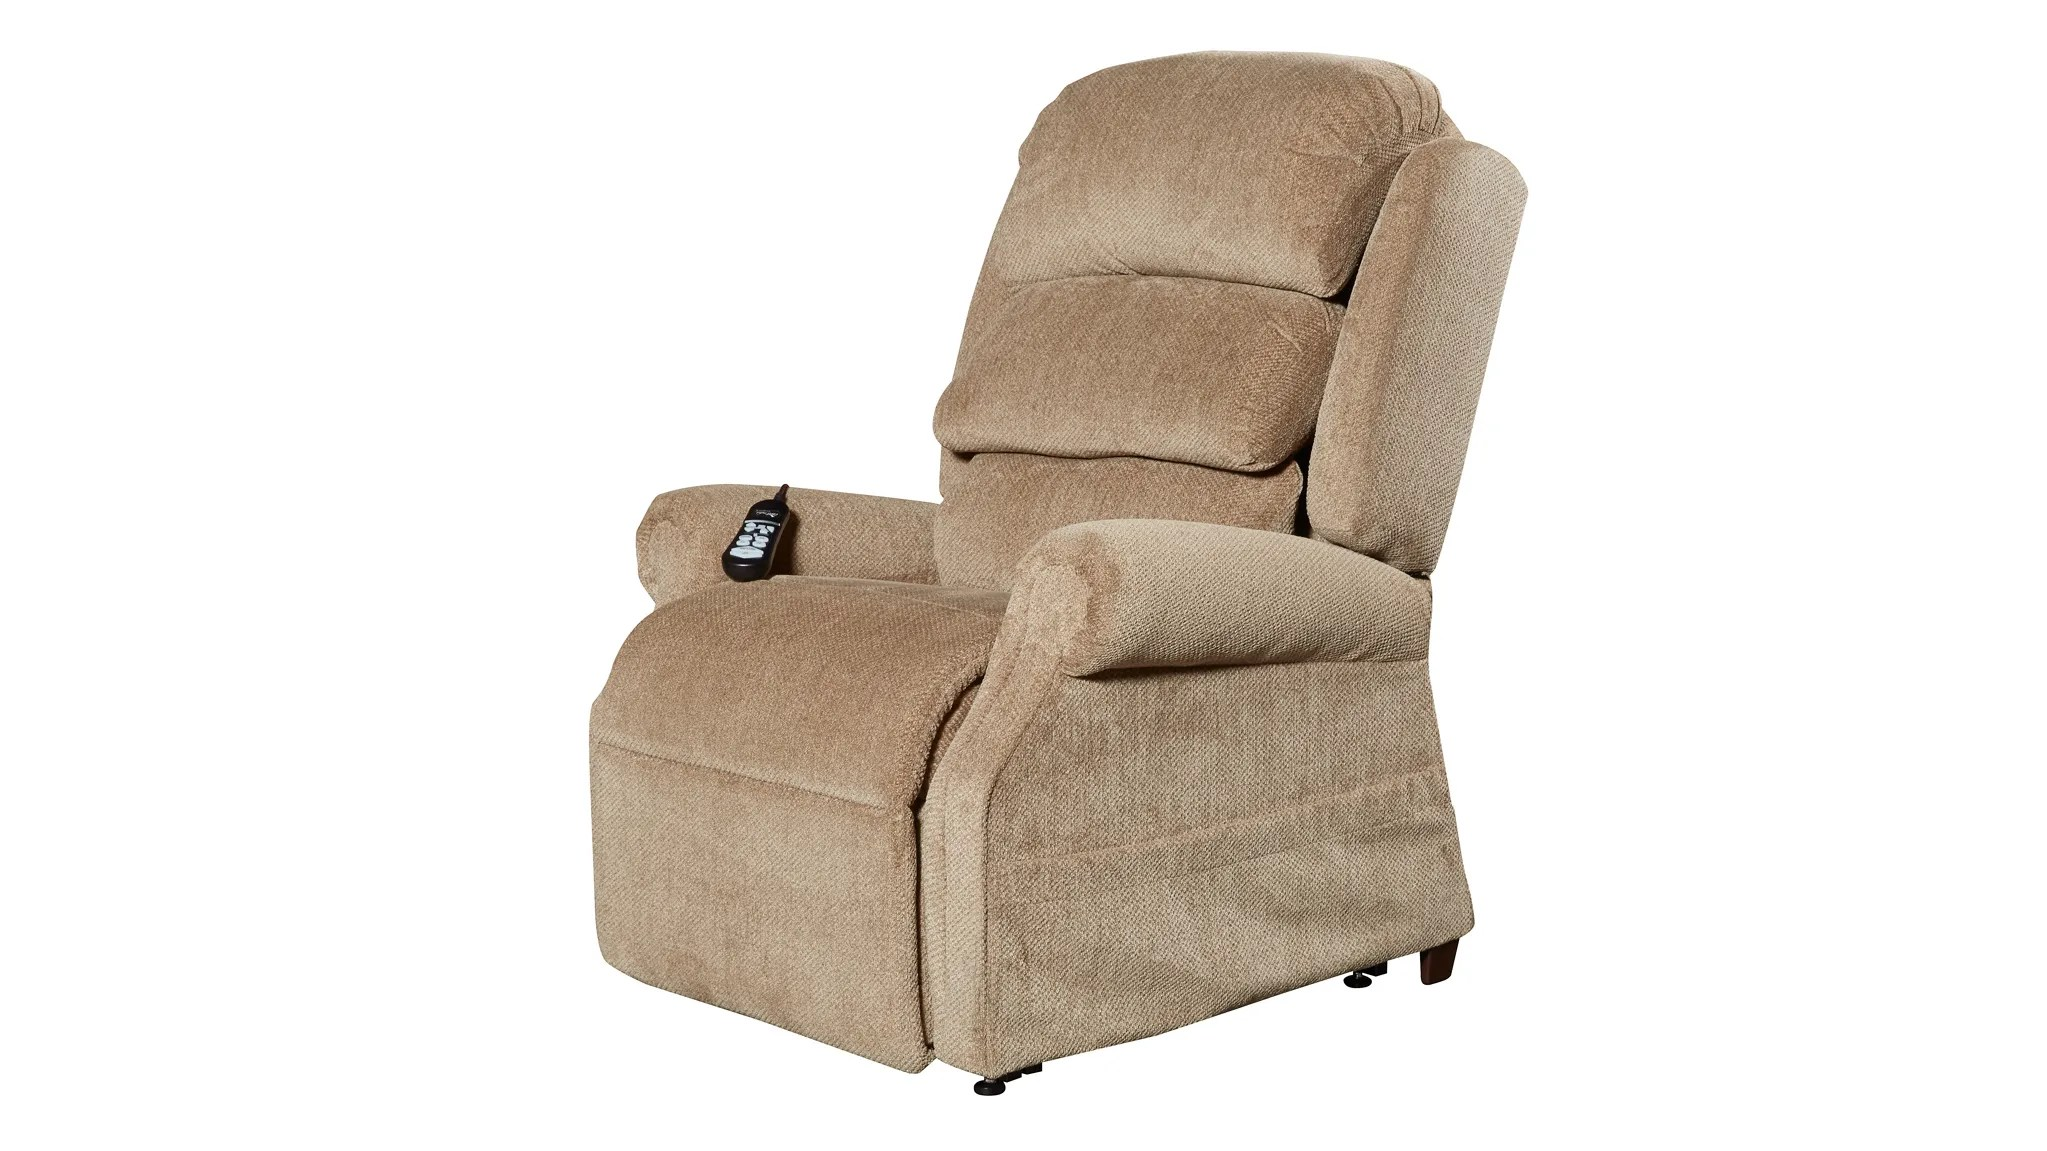 Lift Armchair Lift Chairs